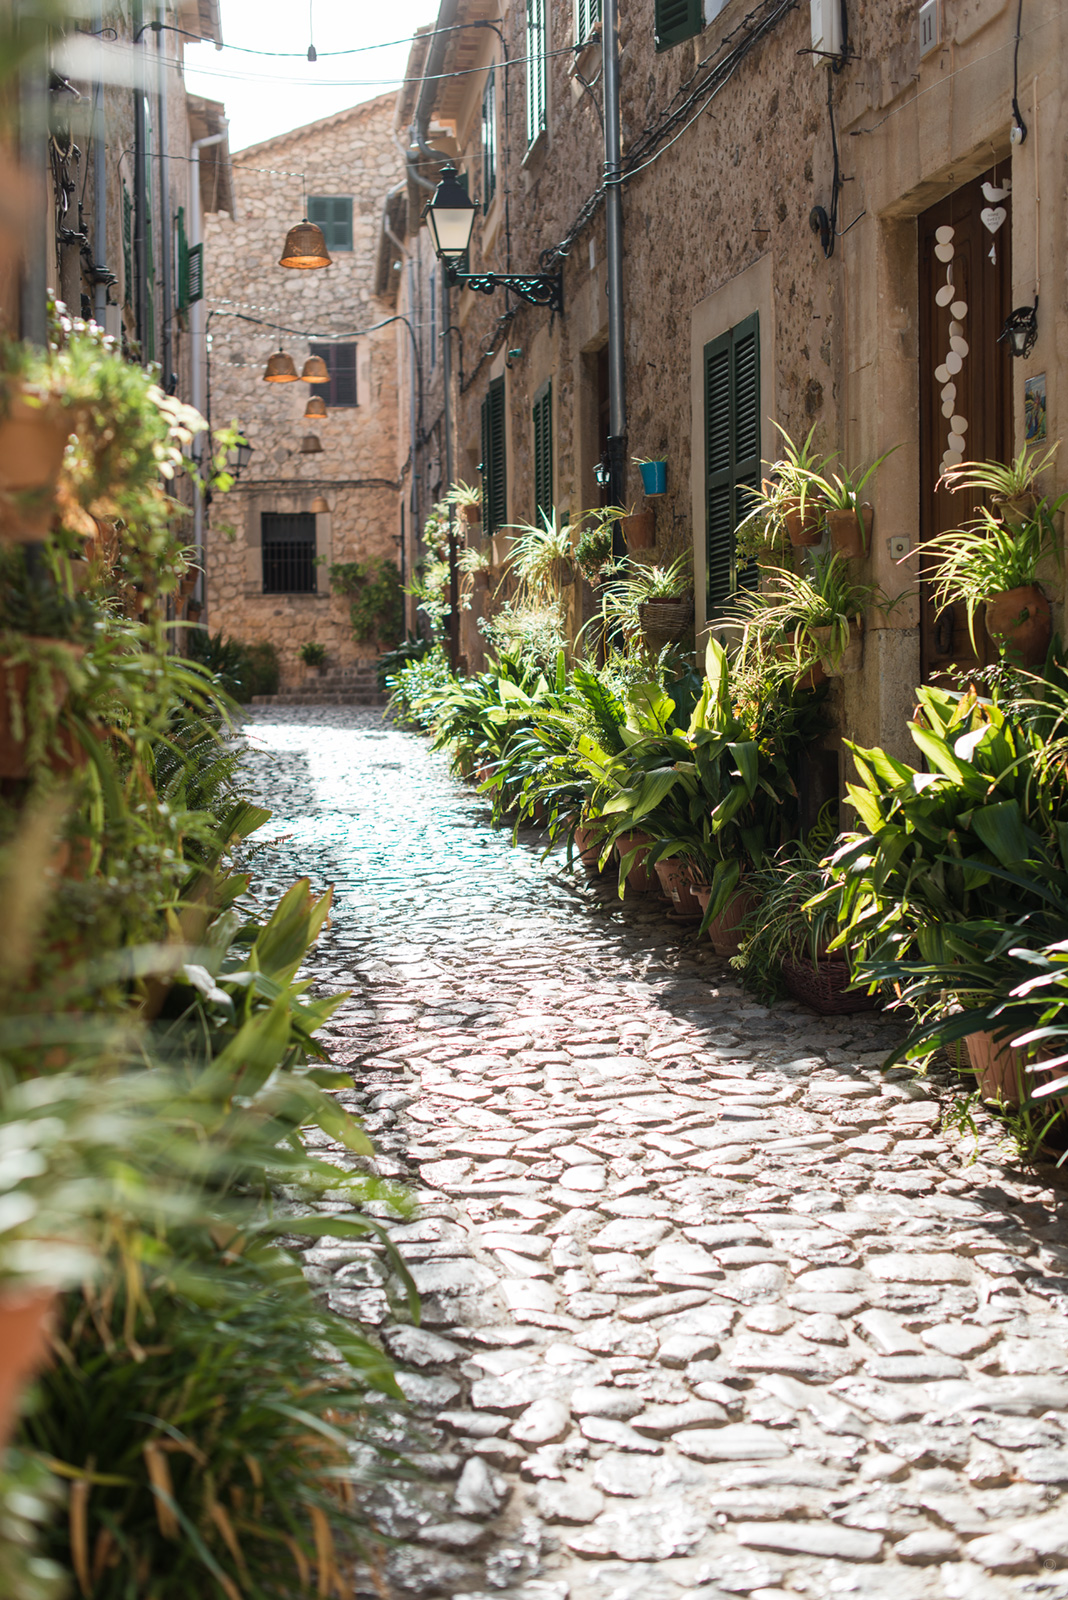 20151004 2556 - A Visit to Valldemossa